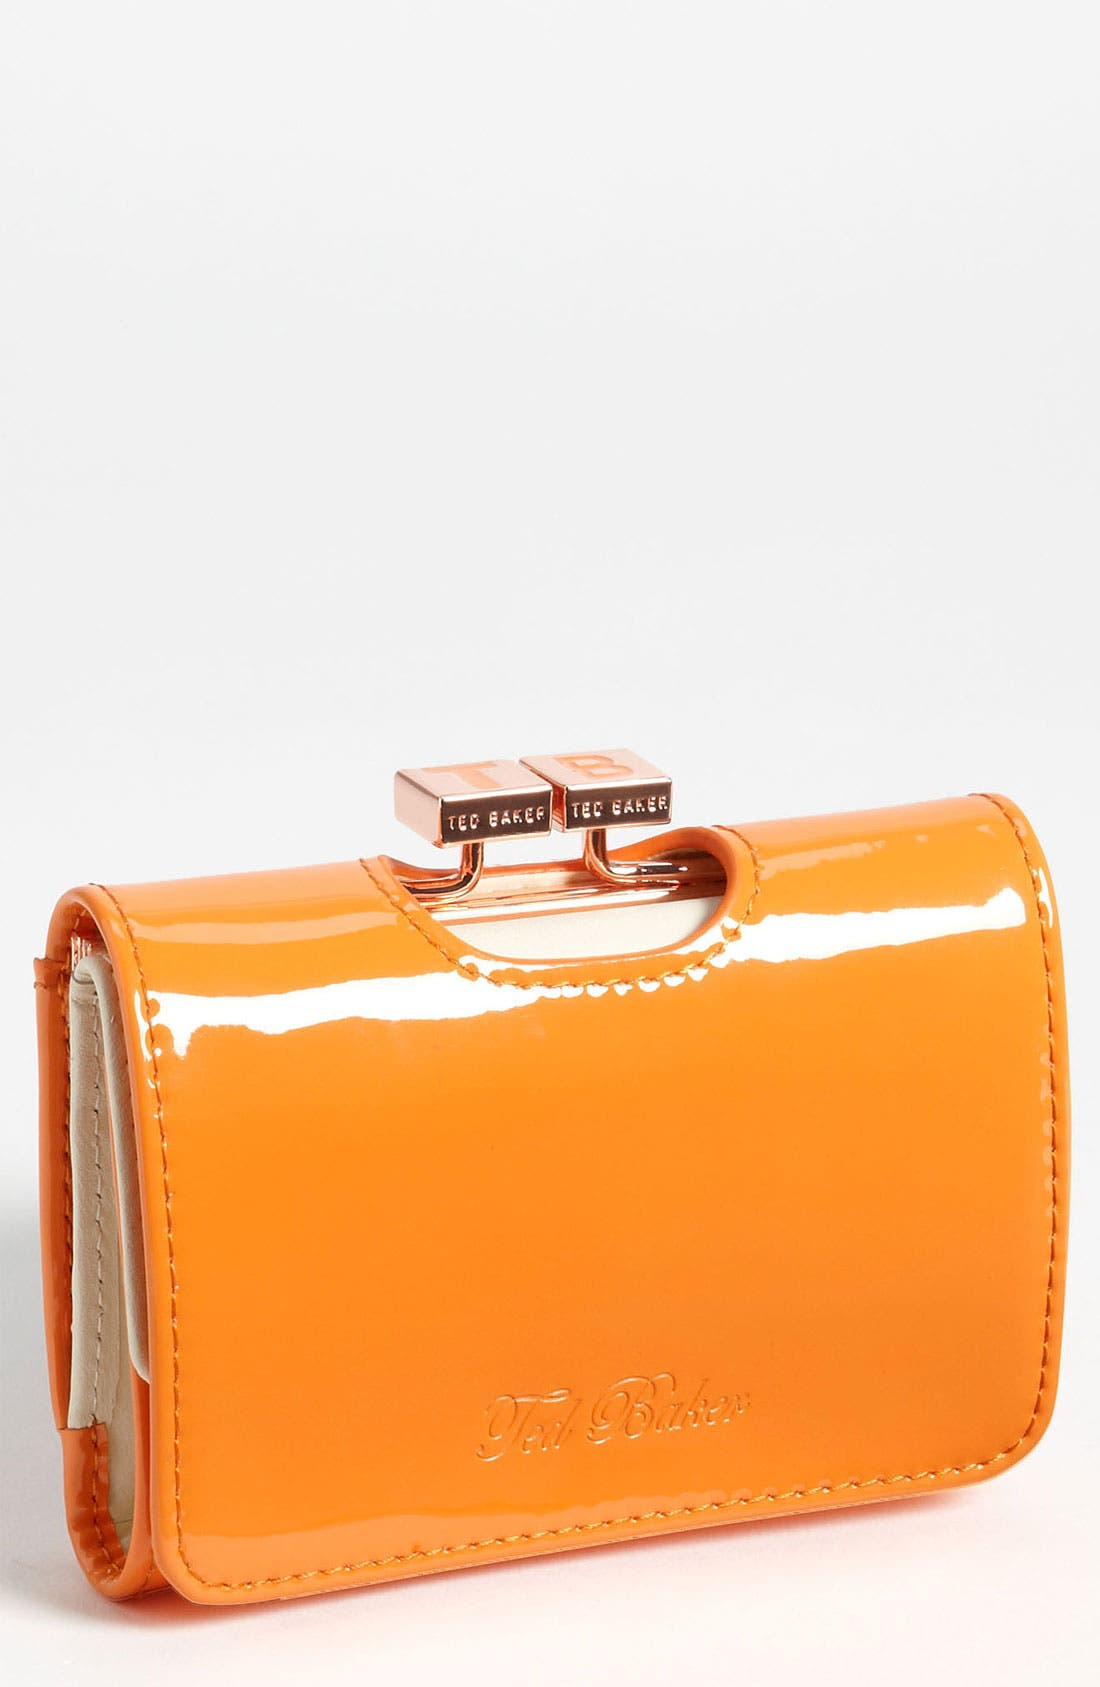 Main Image - Ted Baker London 'Small' Patent Leather Wallet